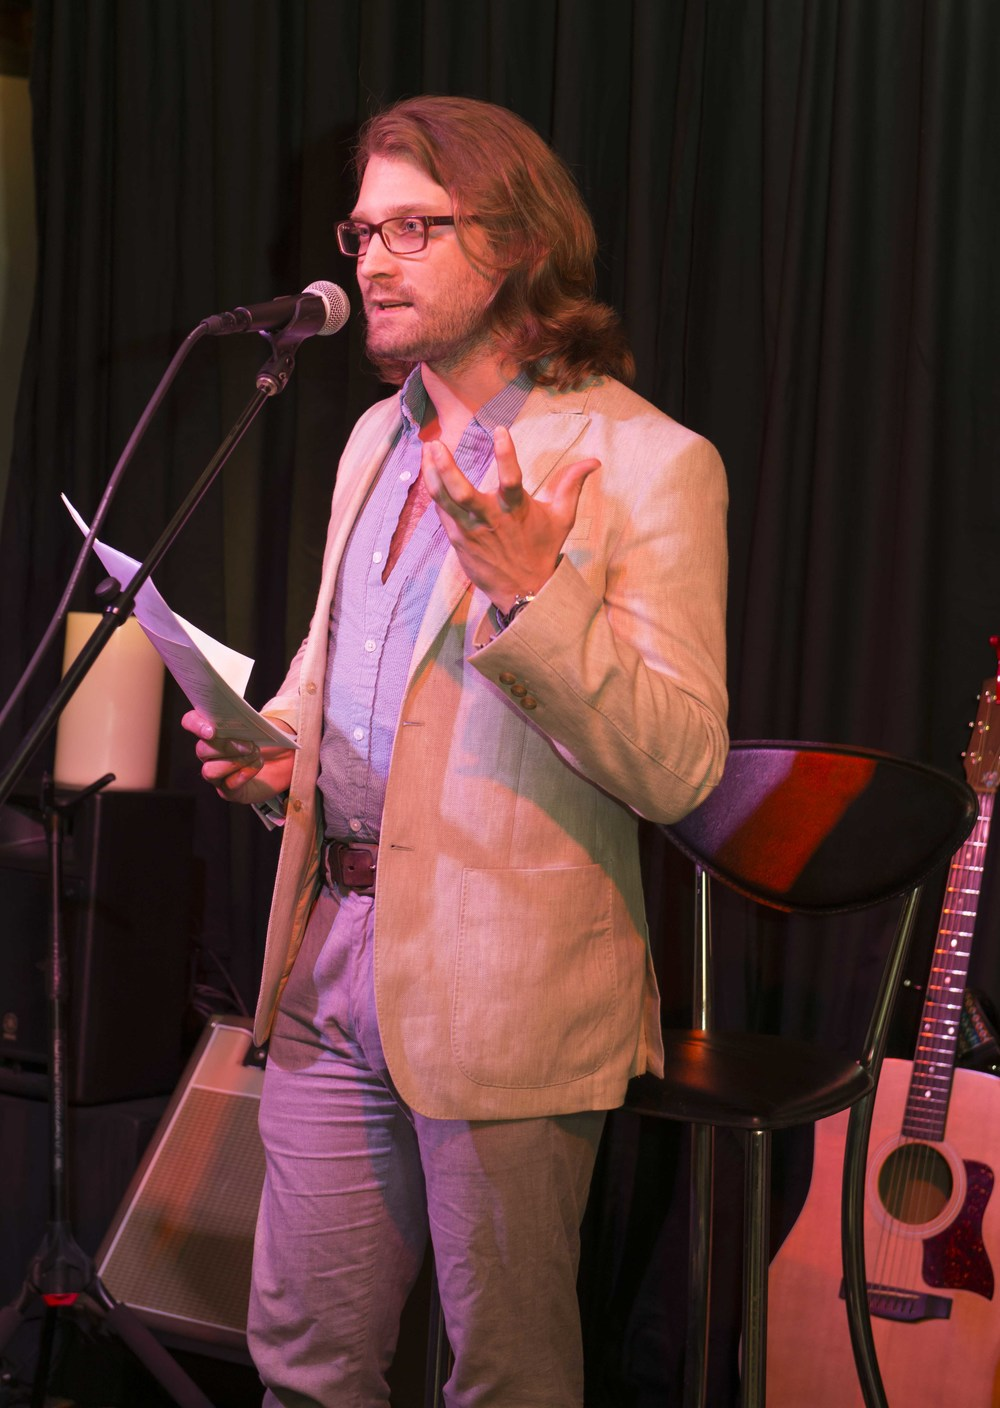 Nathan Klose, poet and emcee (and semi-wild man), for the evening.